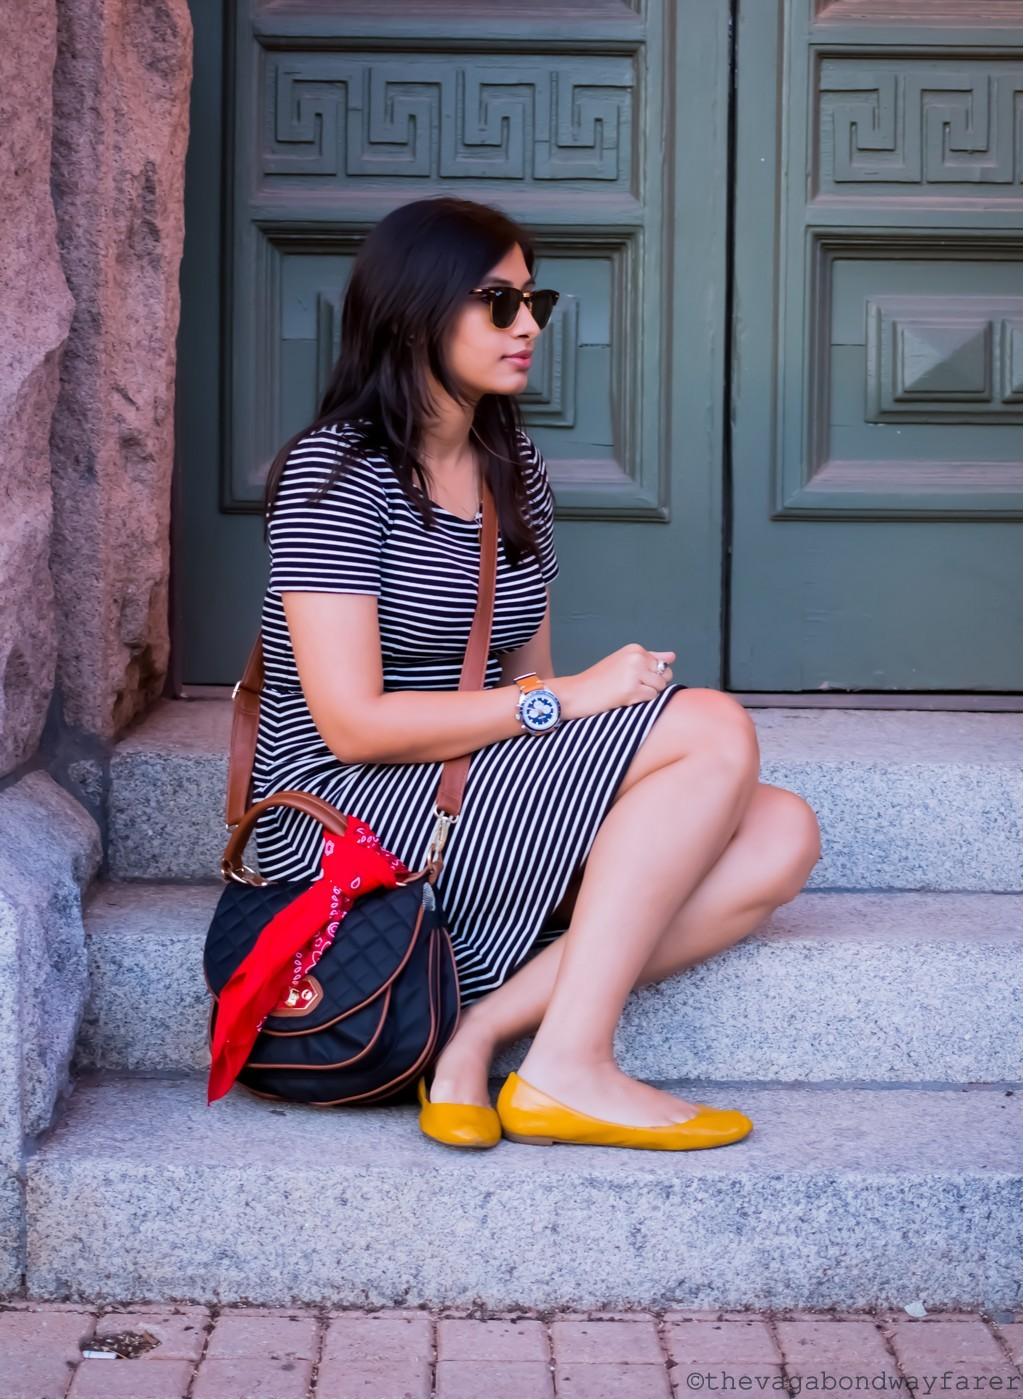 Parisian Stripes/Madewell dress - The Vagabond Wayfarer